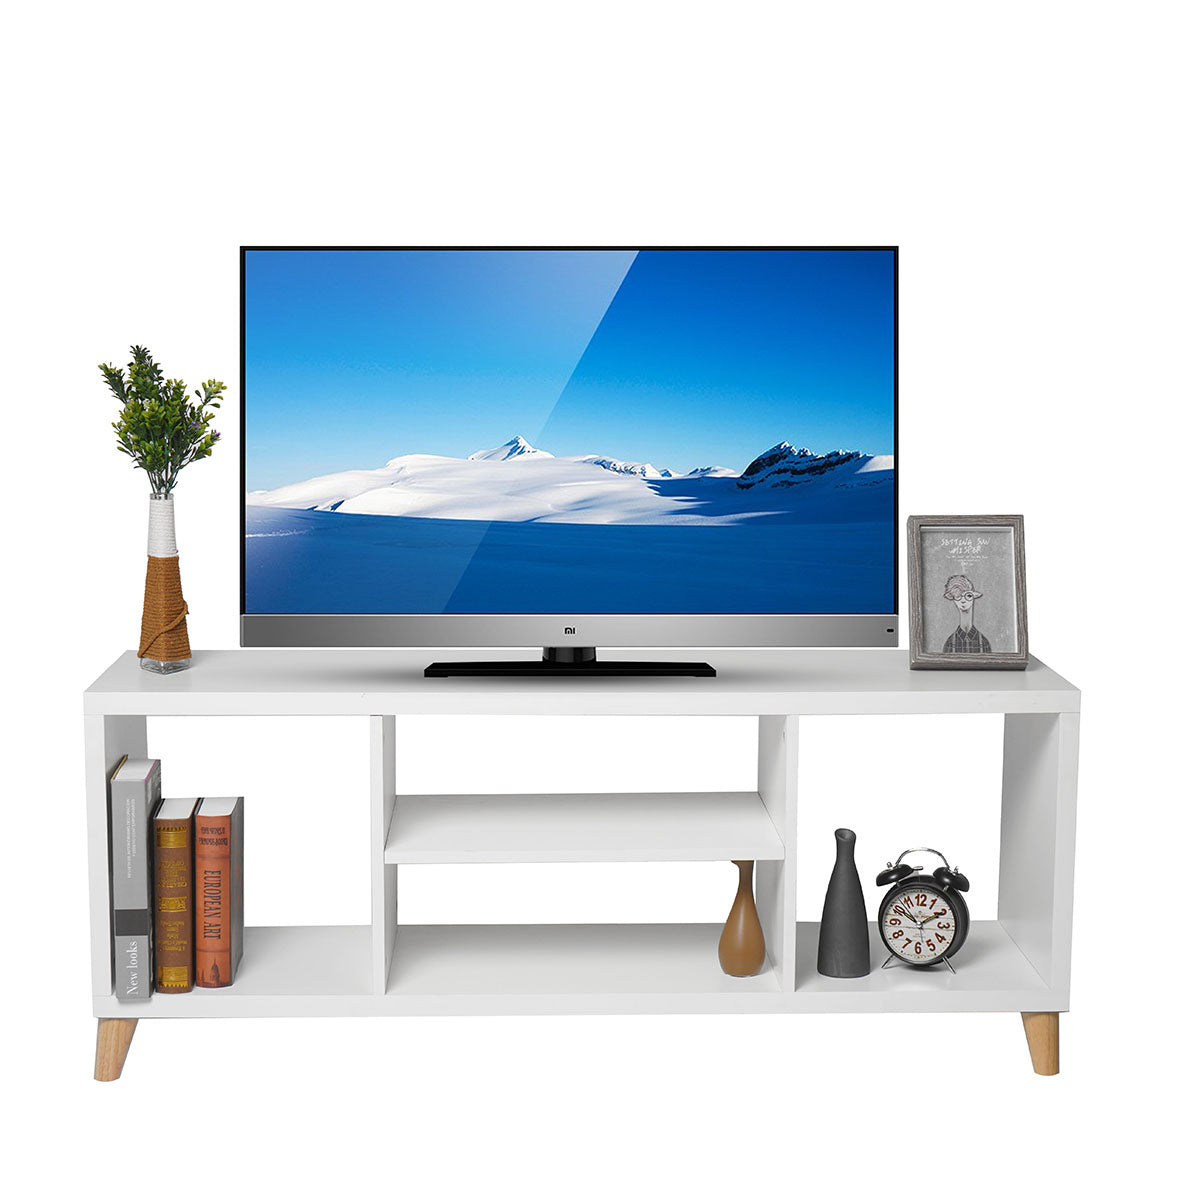 Simple Modern TV Cabinet TV Stand Bookshelf Files Books Storage Shelves with 4 Open Layers for Living Room Bedroom Study Office